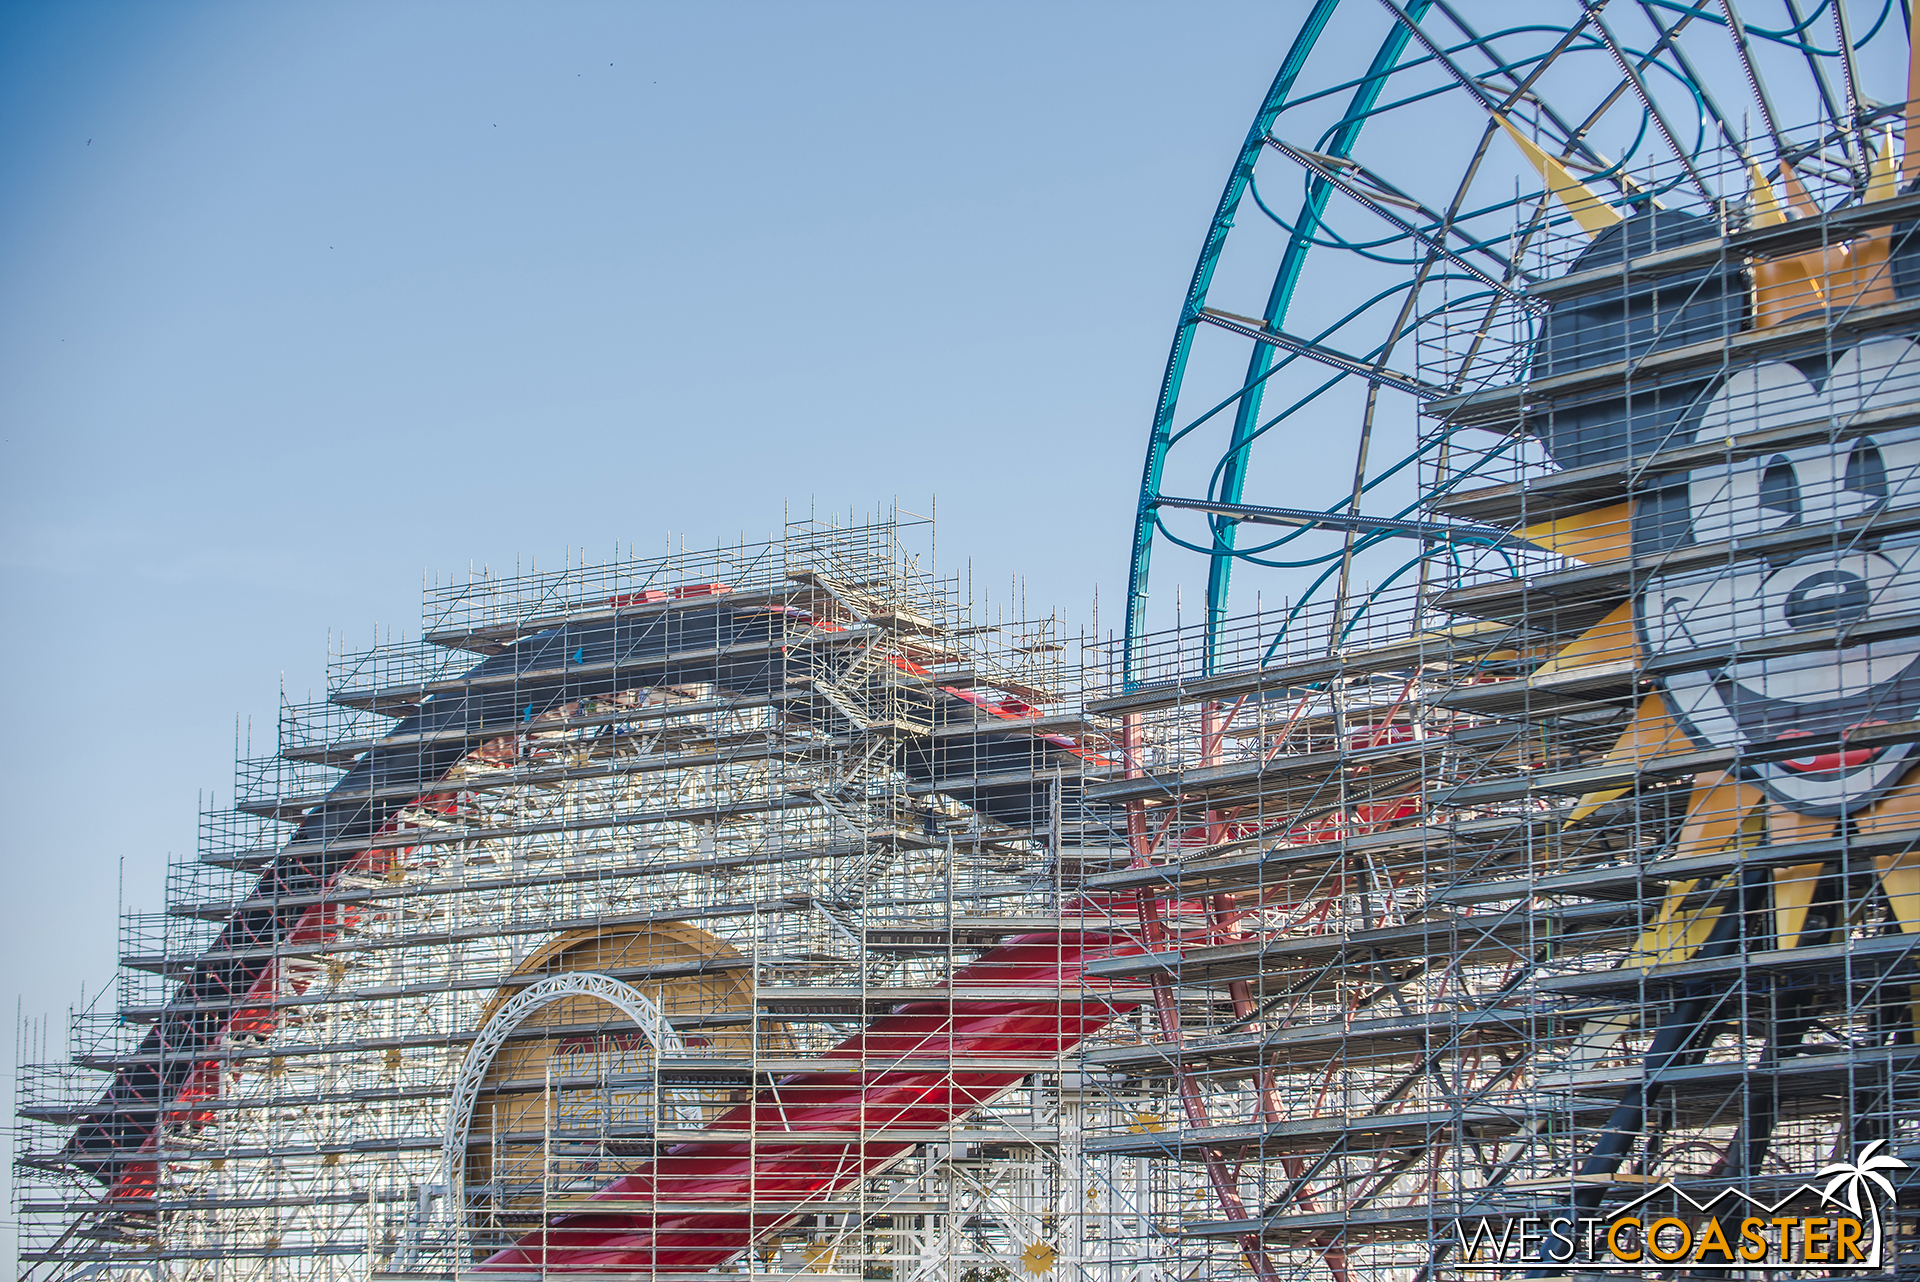 They've rotated the Fun Wheel 180° so they can repaint the other half.